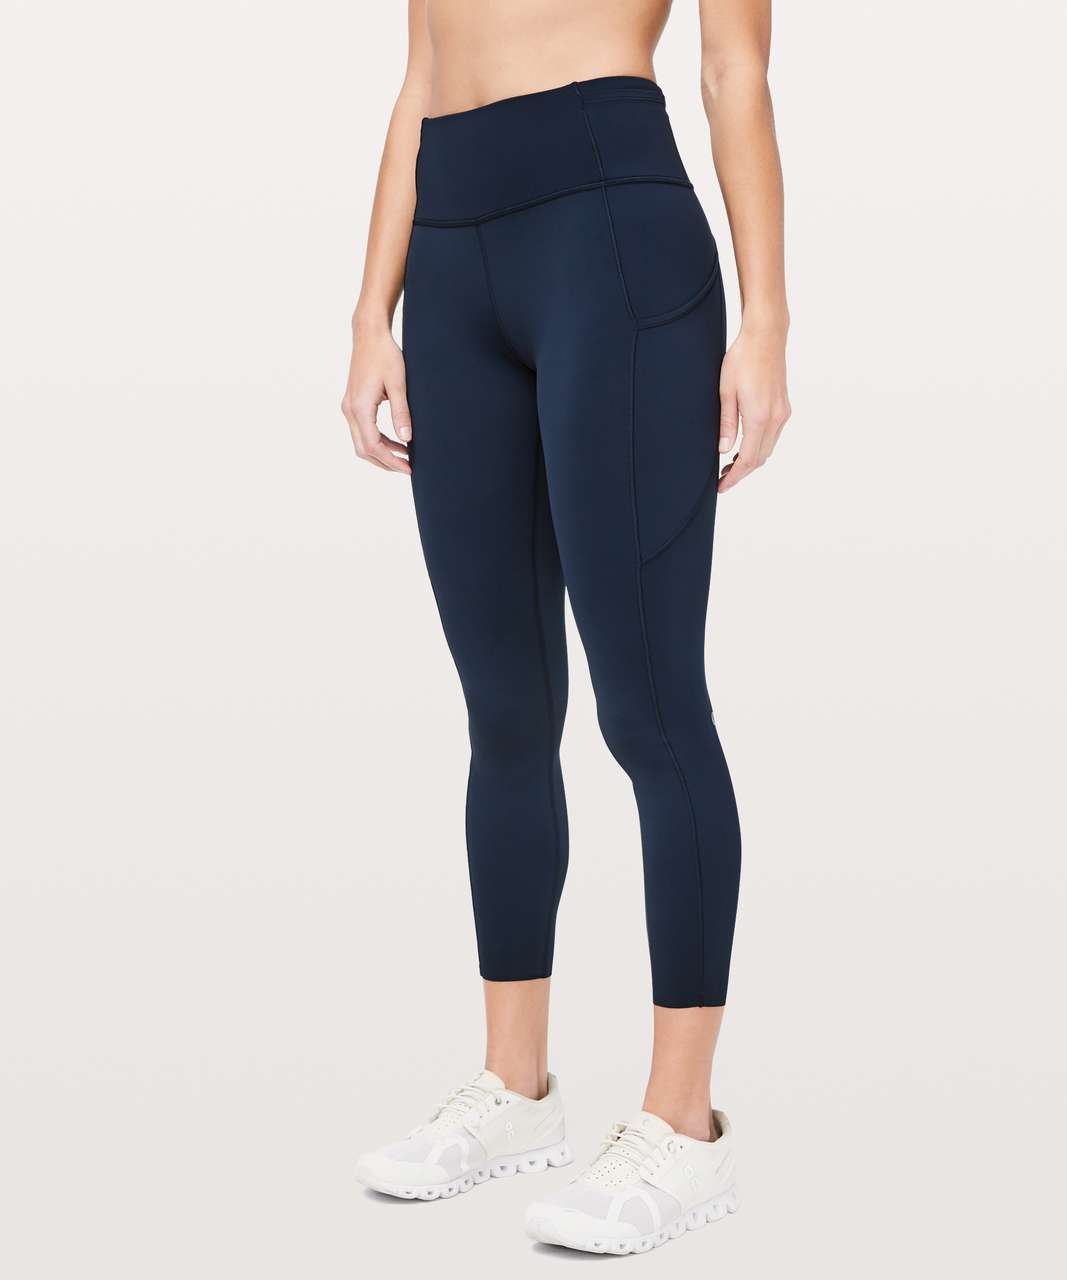 "Lululemon Fast & Free 7/8 Tight II *Non-Reflective Nulux 25"" - True Navy"